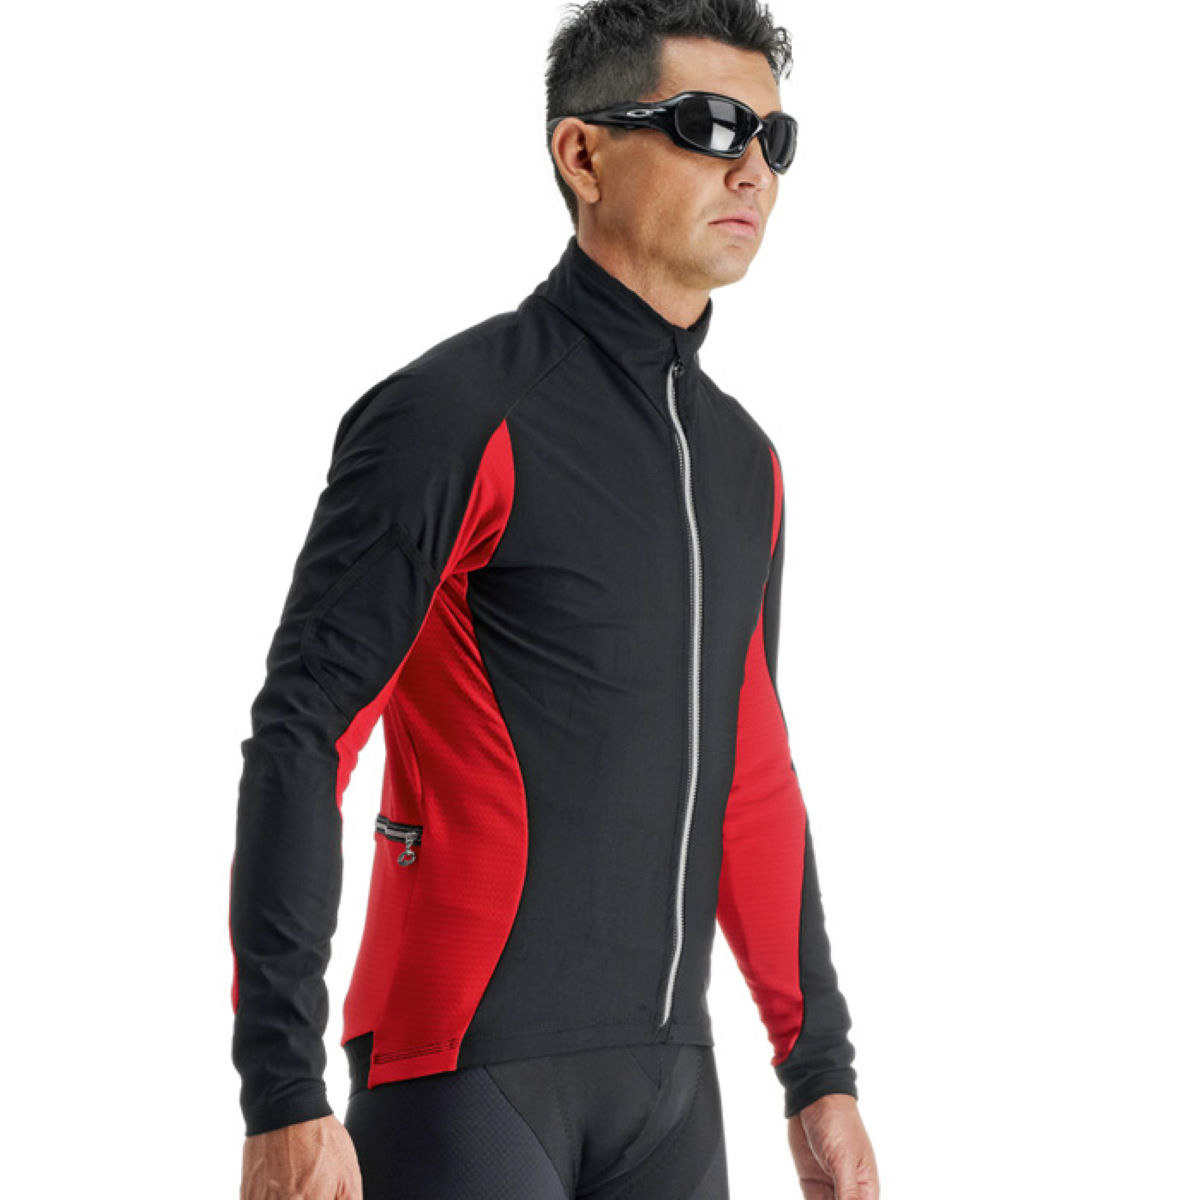 Veste coupe-vent Assos iJ.HaBu5 - M Red Swiss Coupe-vents vélo